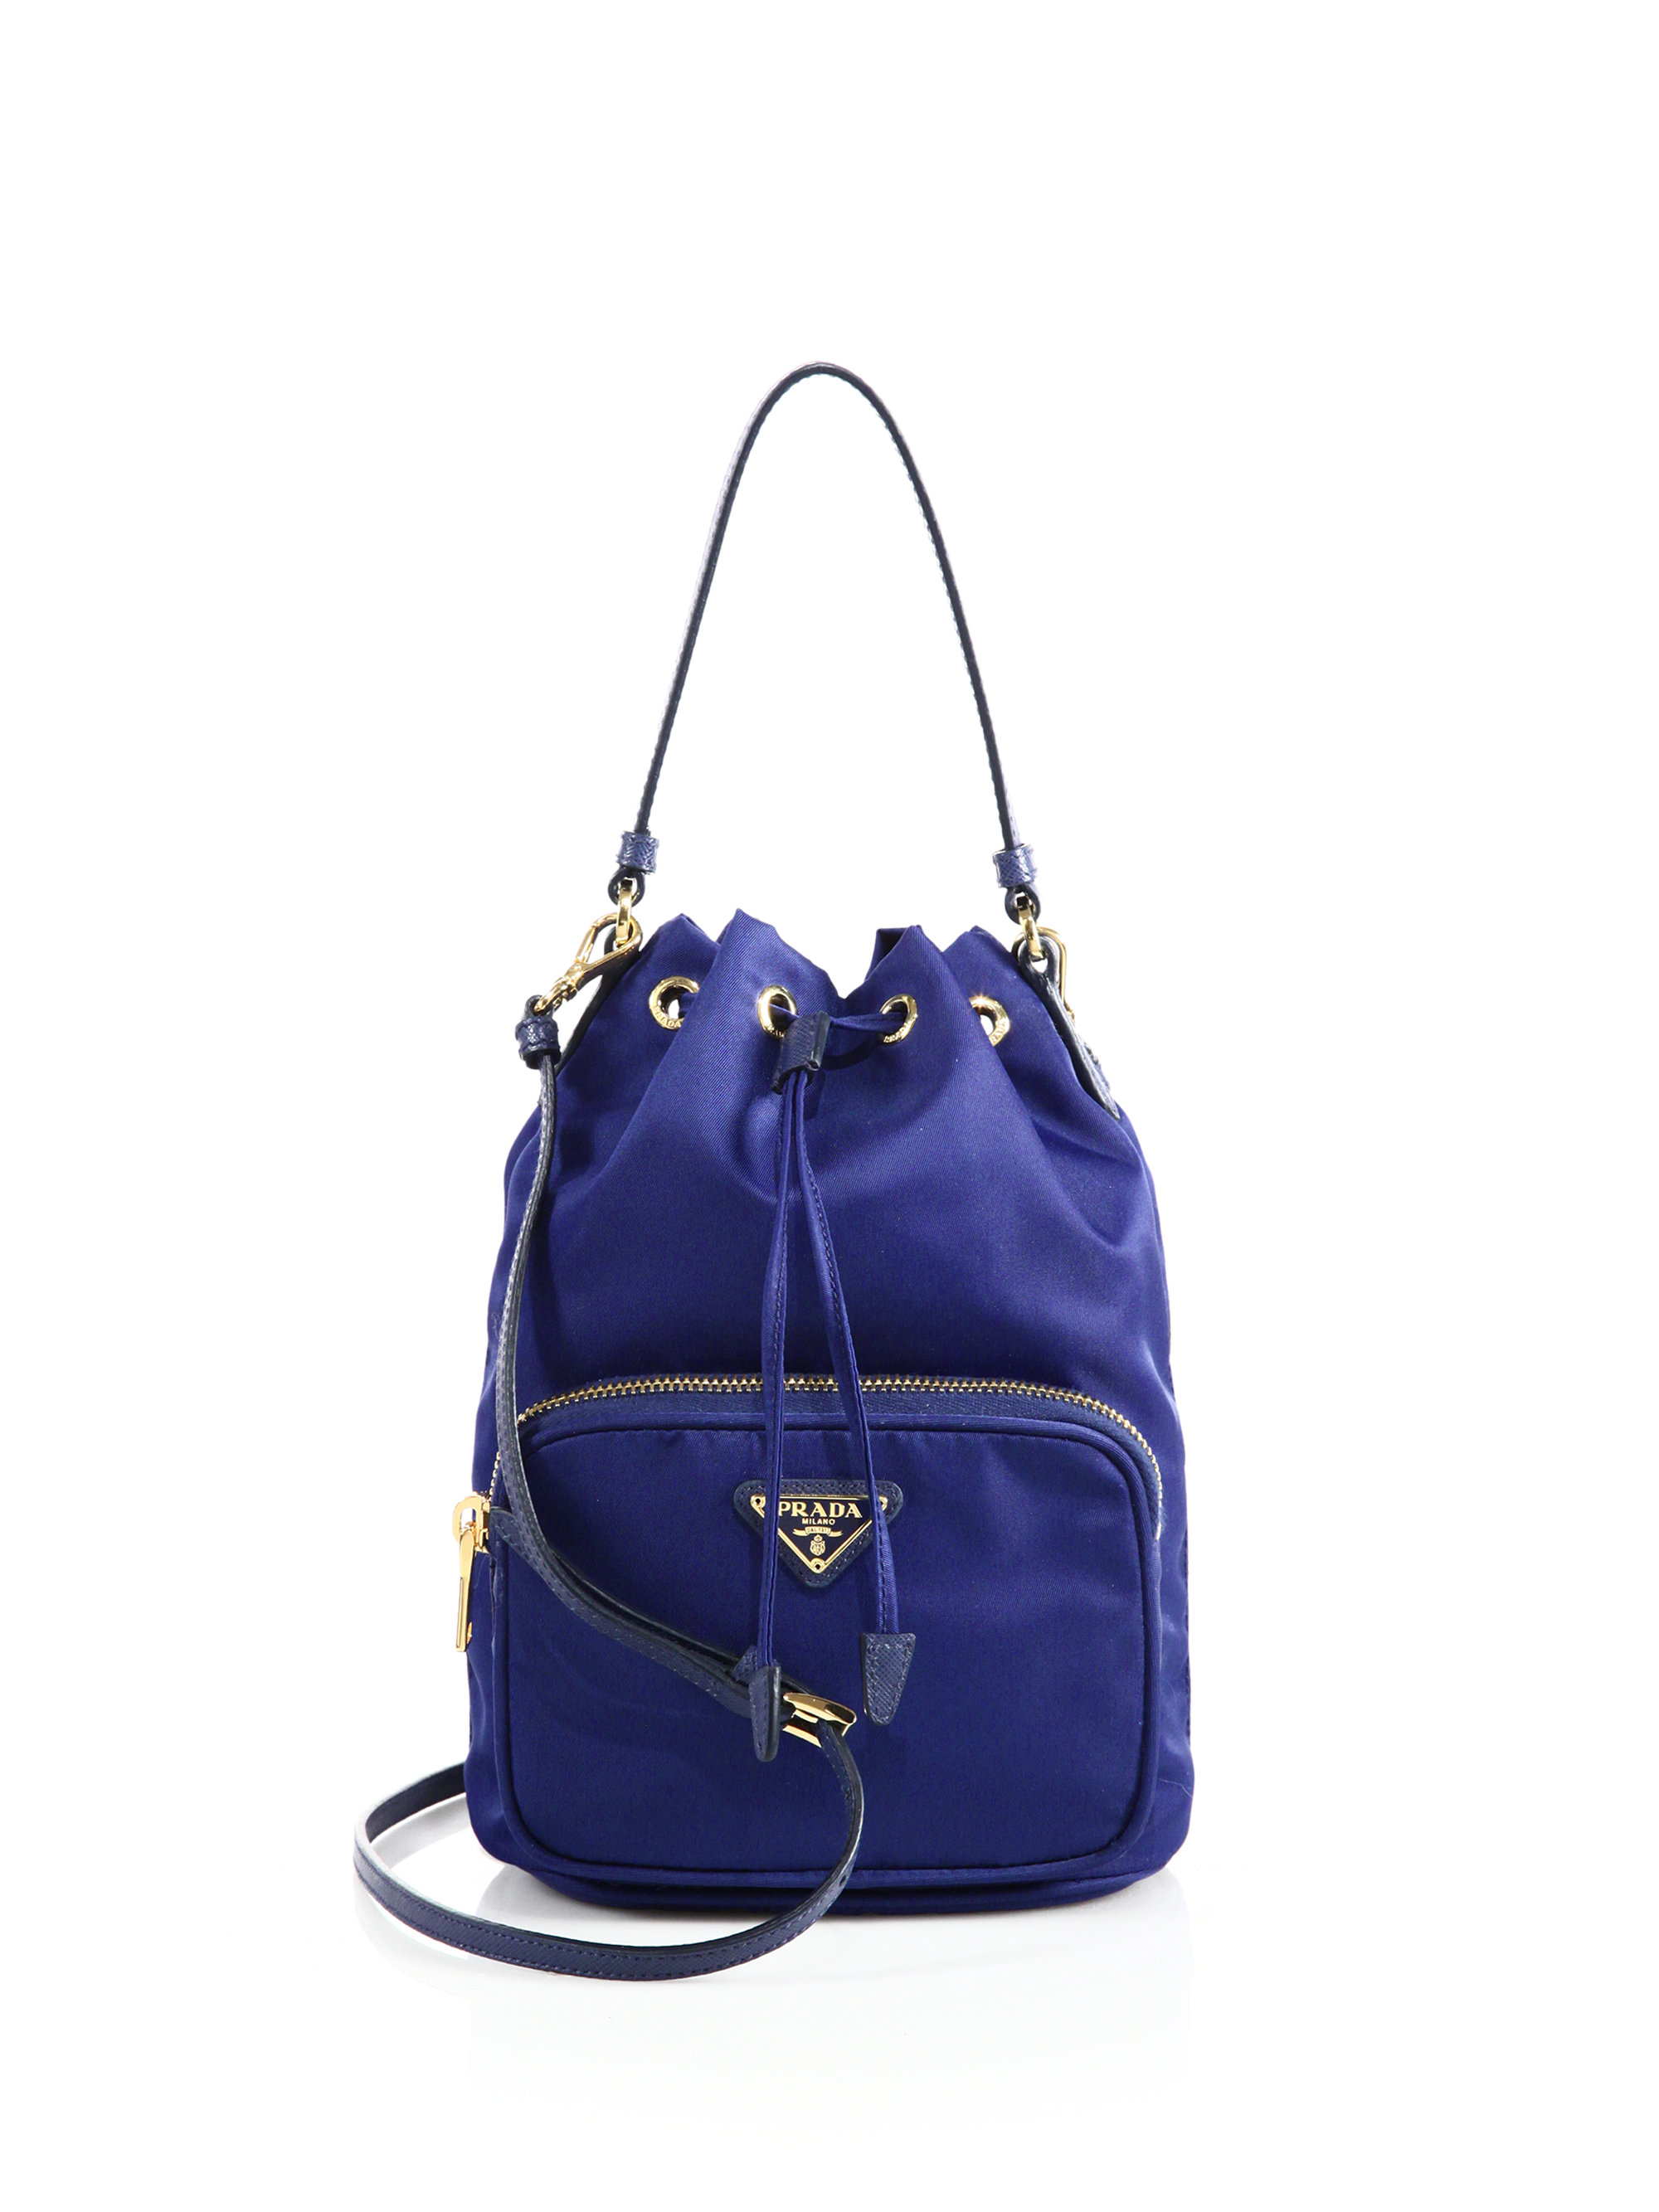 prada sale handbags - Prada Shoulder Bags | Lyst?